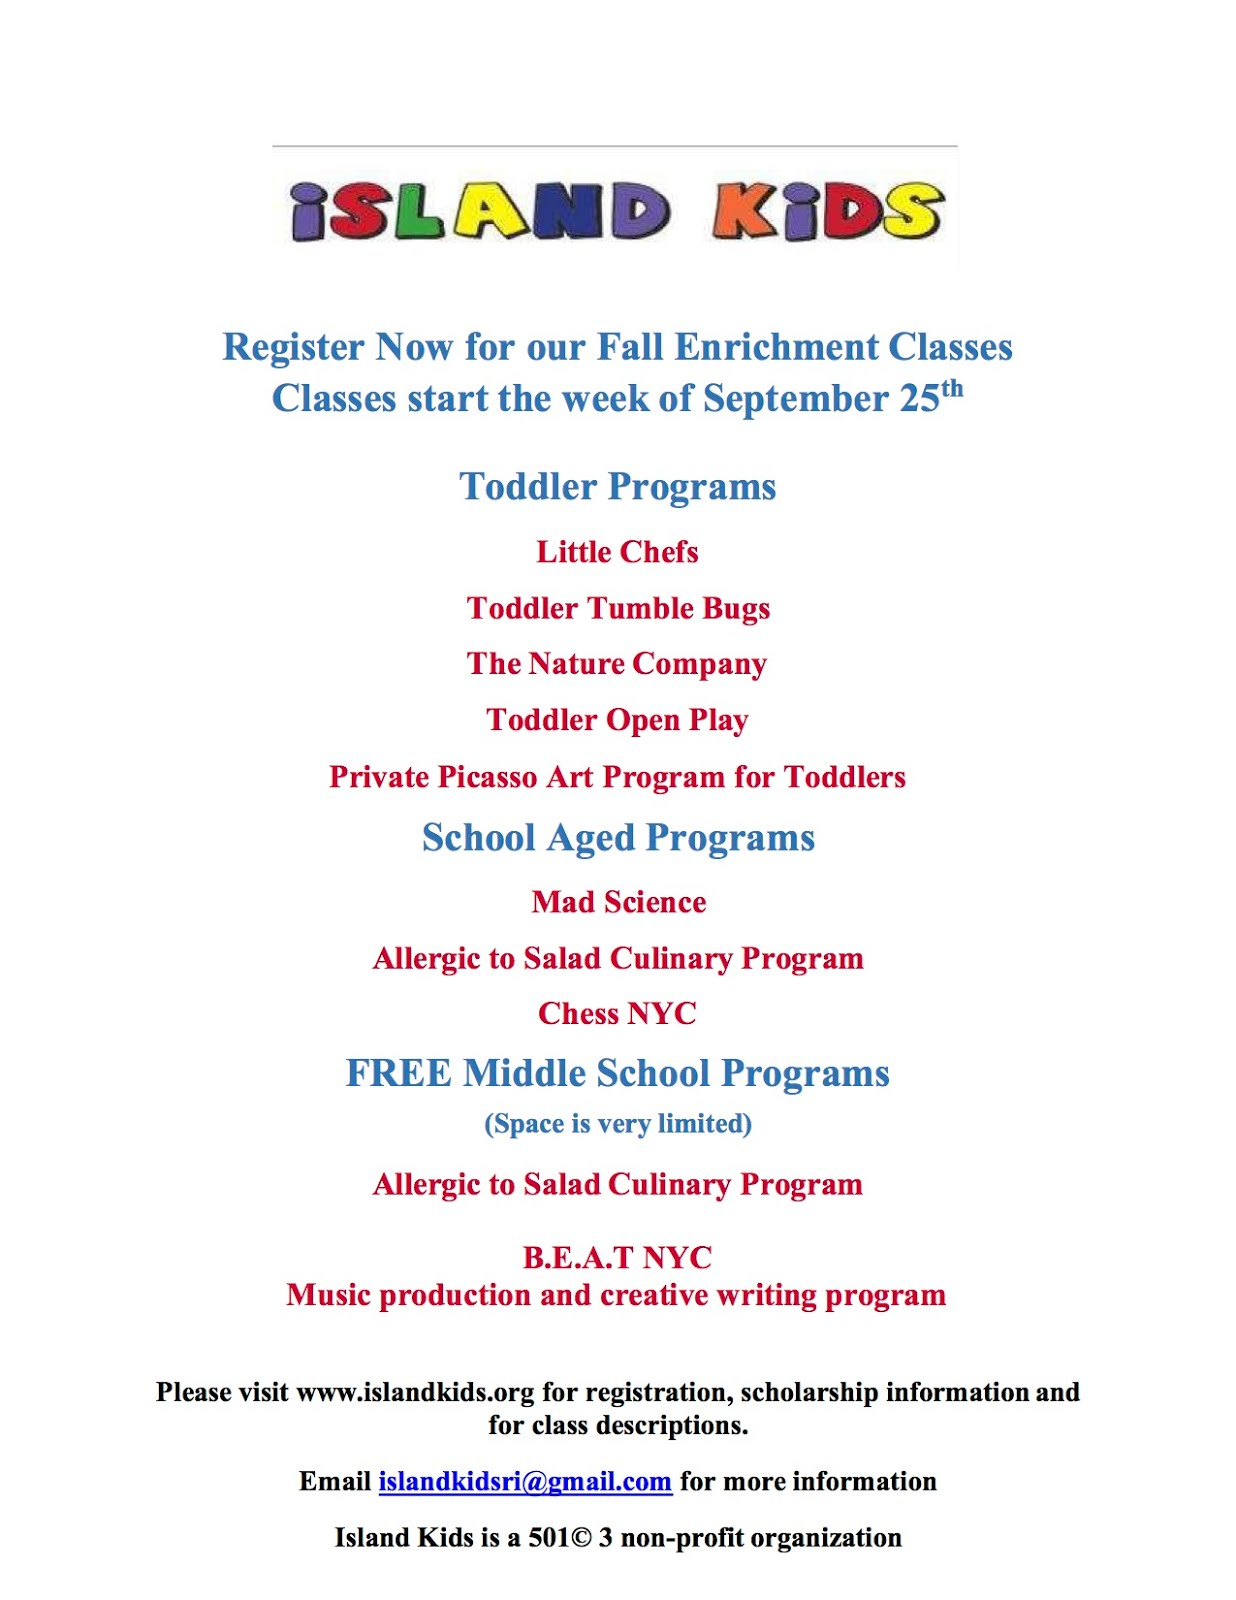 Register Now For Island Kids Fall Enrichment Classes